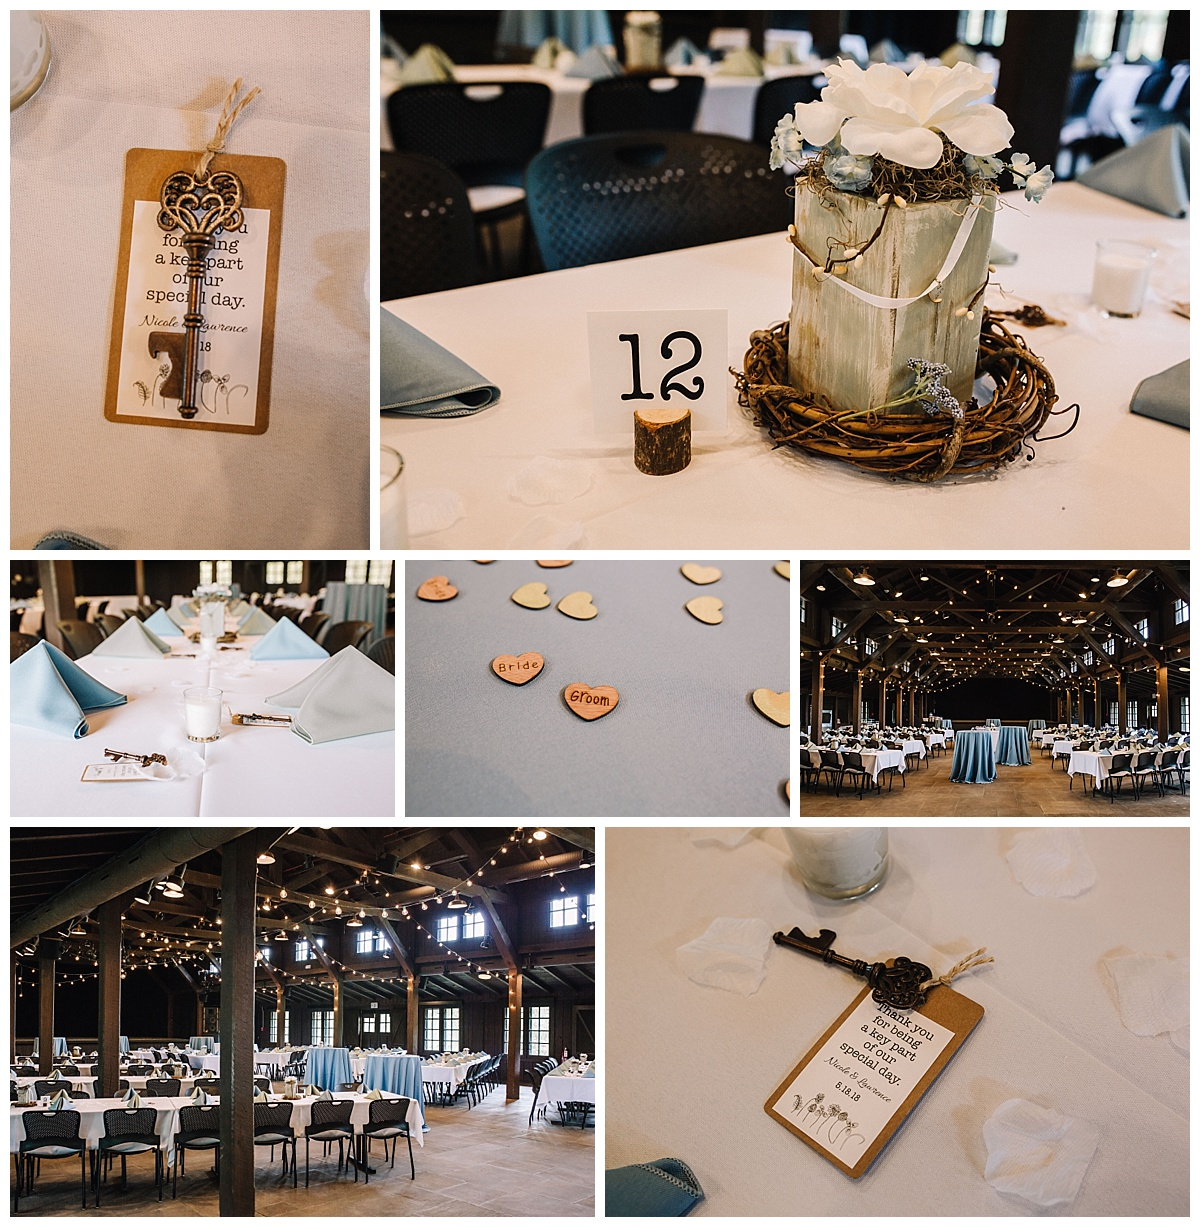 Northeast Ohio Wedding Photographer - Mr. & Mrs. Repko - Happy Days Lodge - Lindsay Dawn Photography